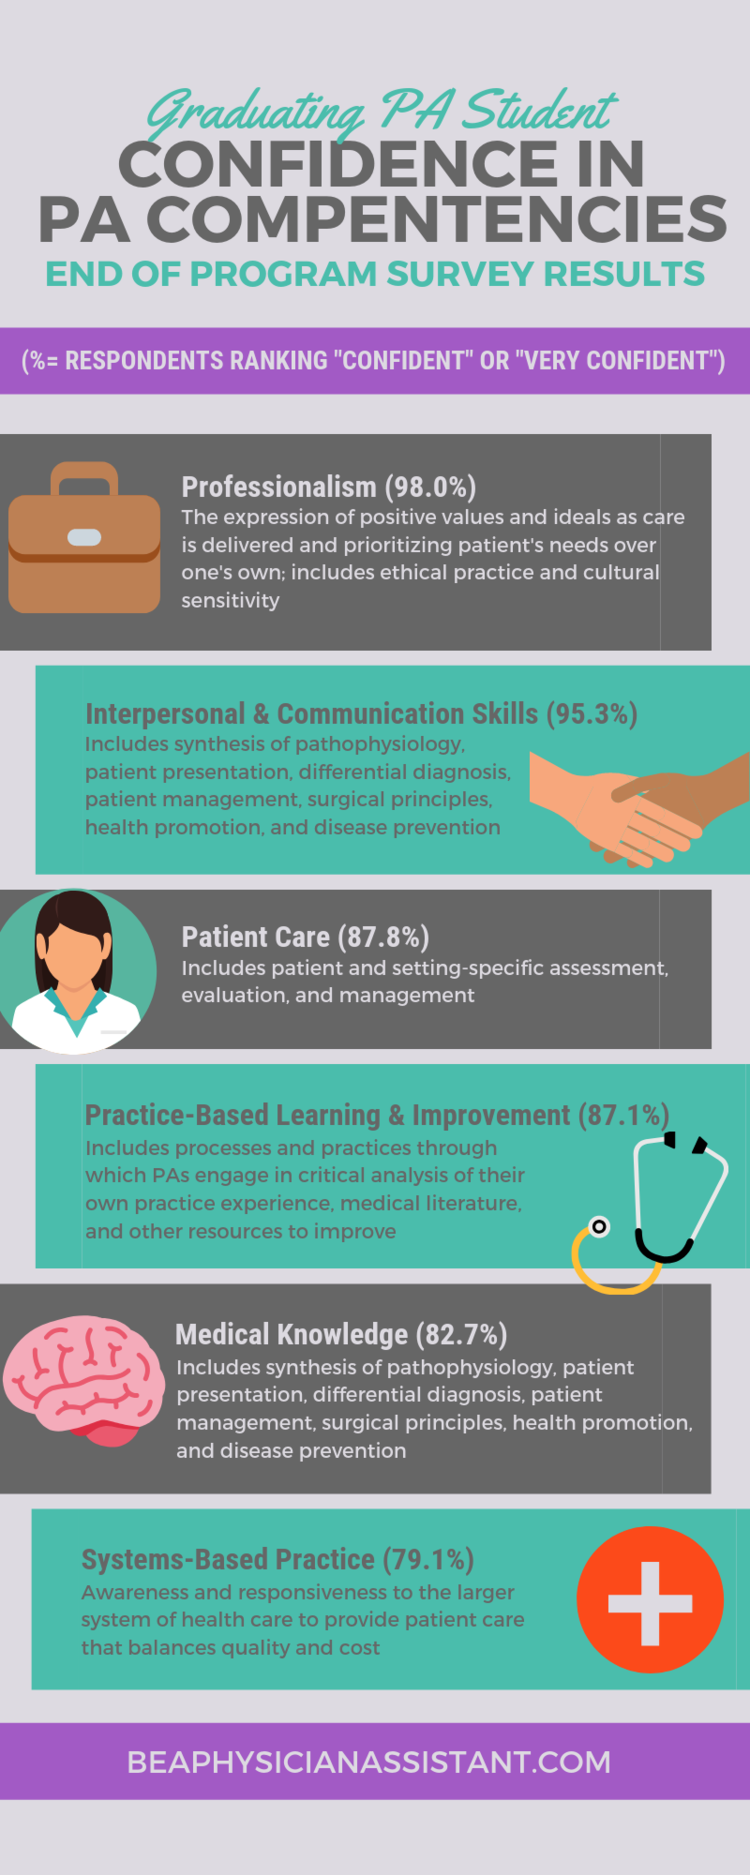 Just Your Average Pa Student 4 0 Part 2 Be A Physician Assistant Physician Assistant Pediatric Physician Assistant Interpersonal Communication Skills